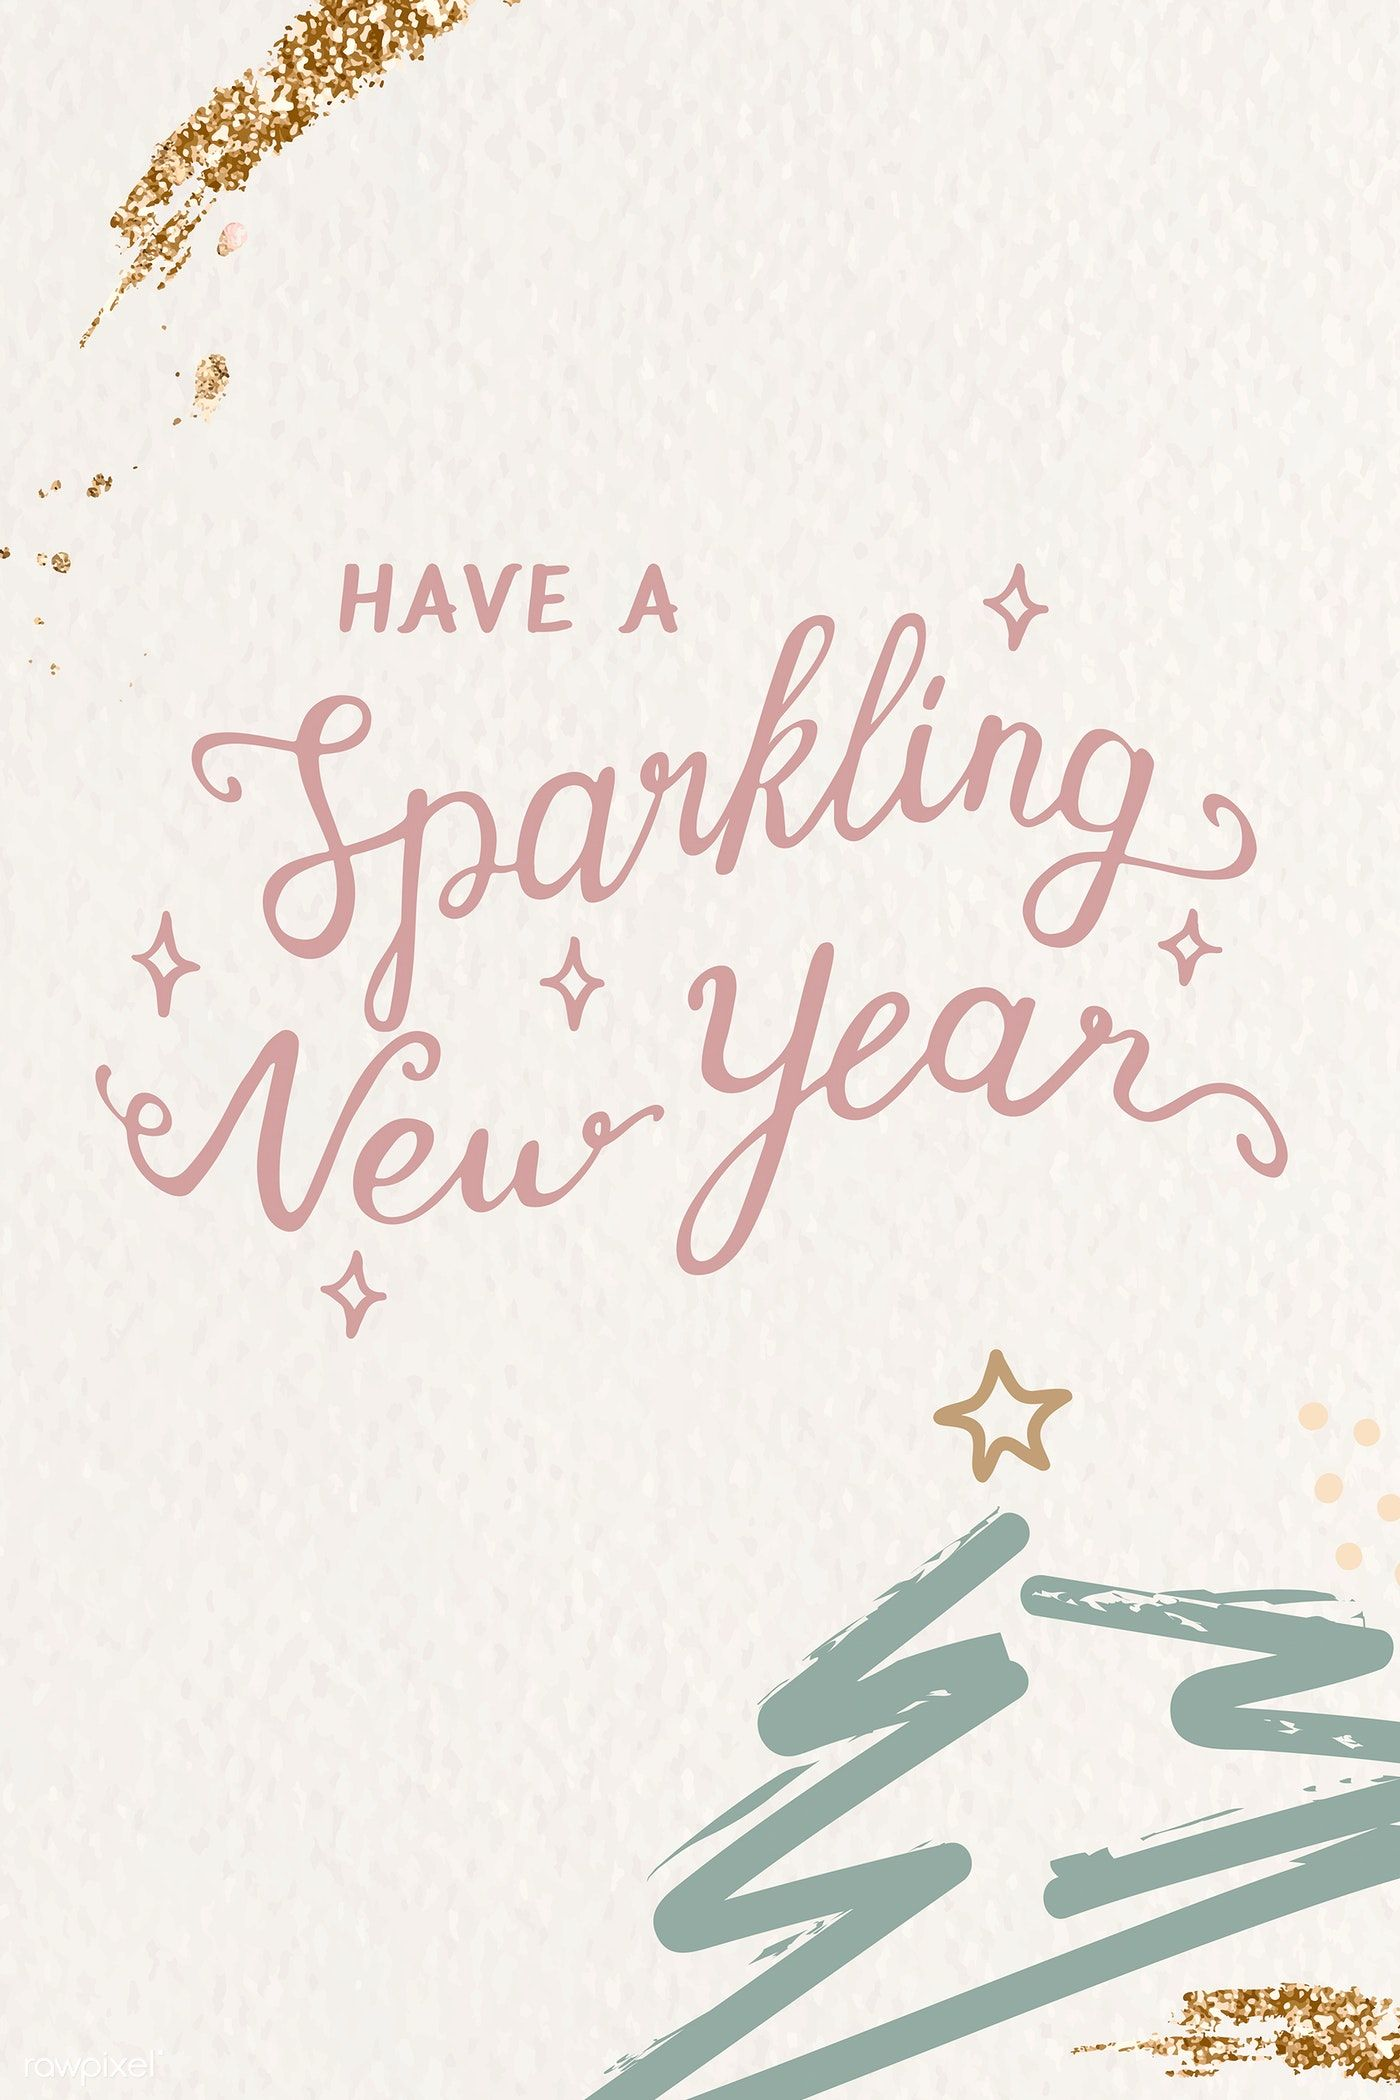 Download premium vector of Have a sparkling new year card